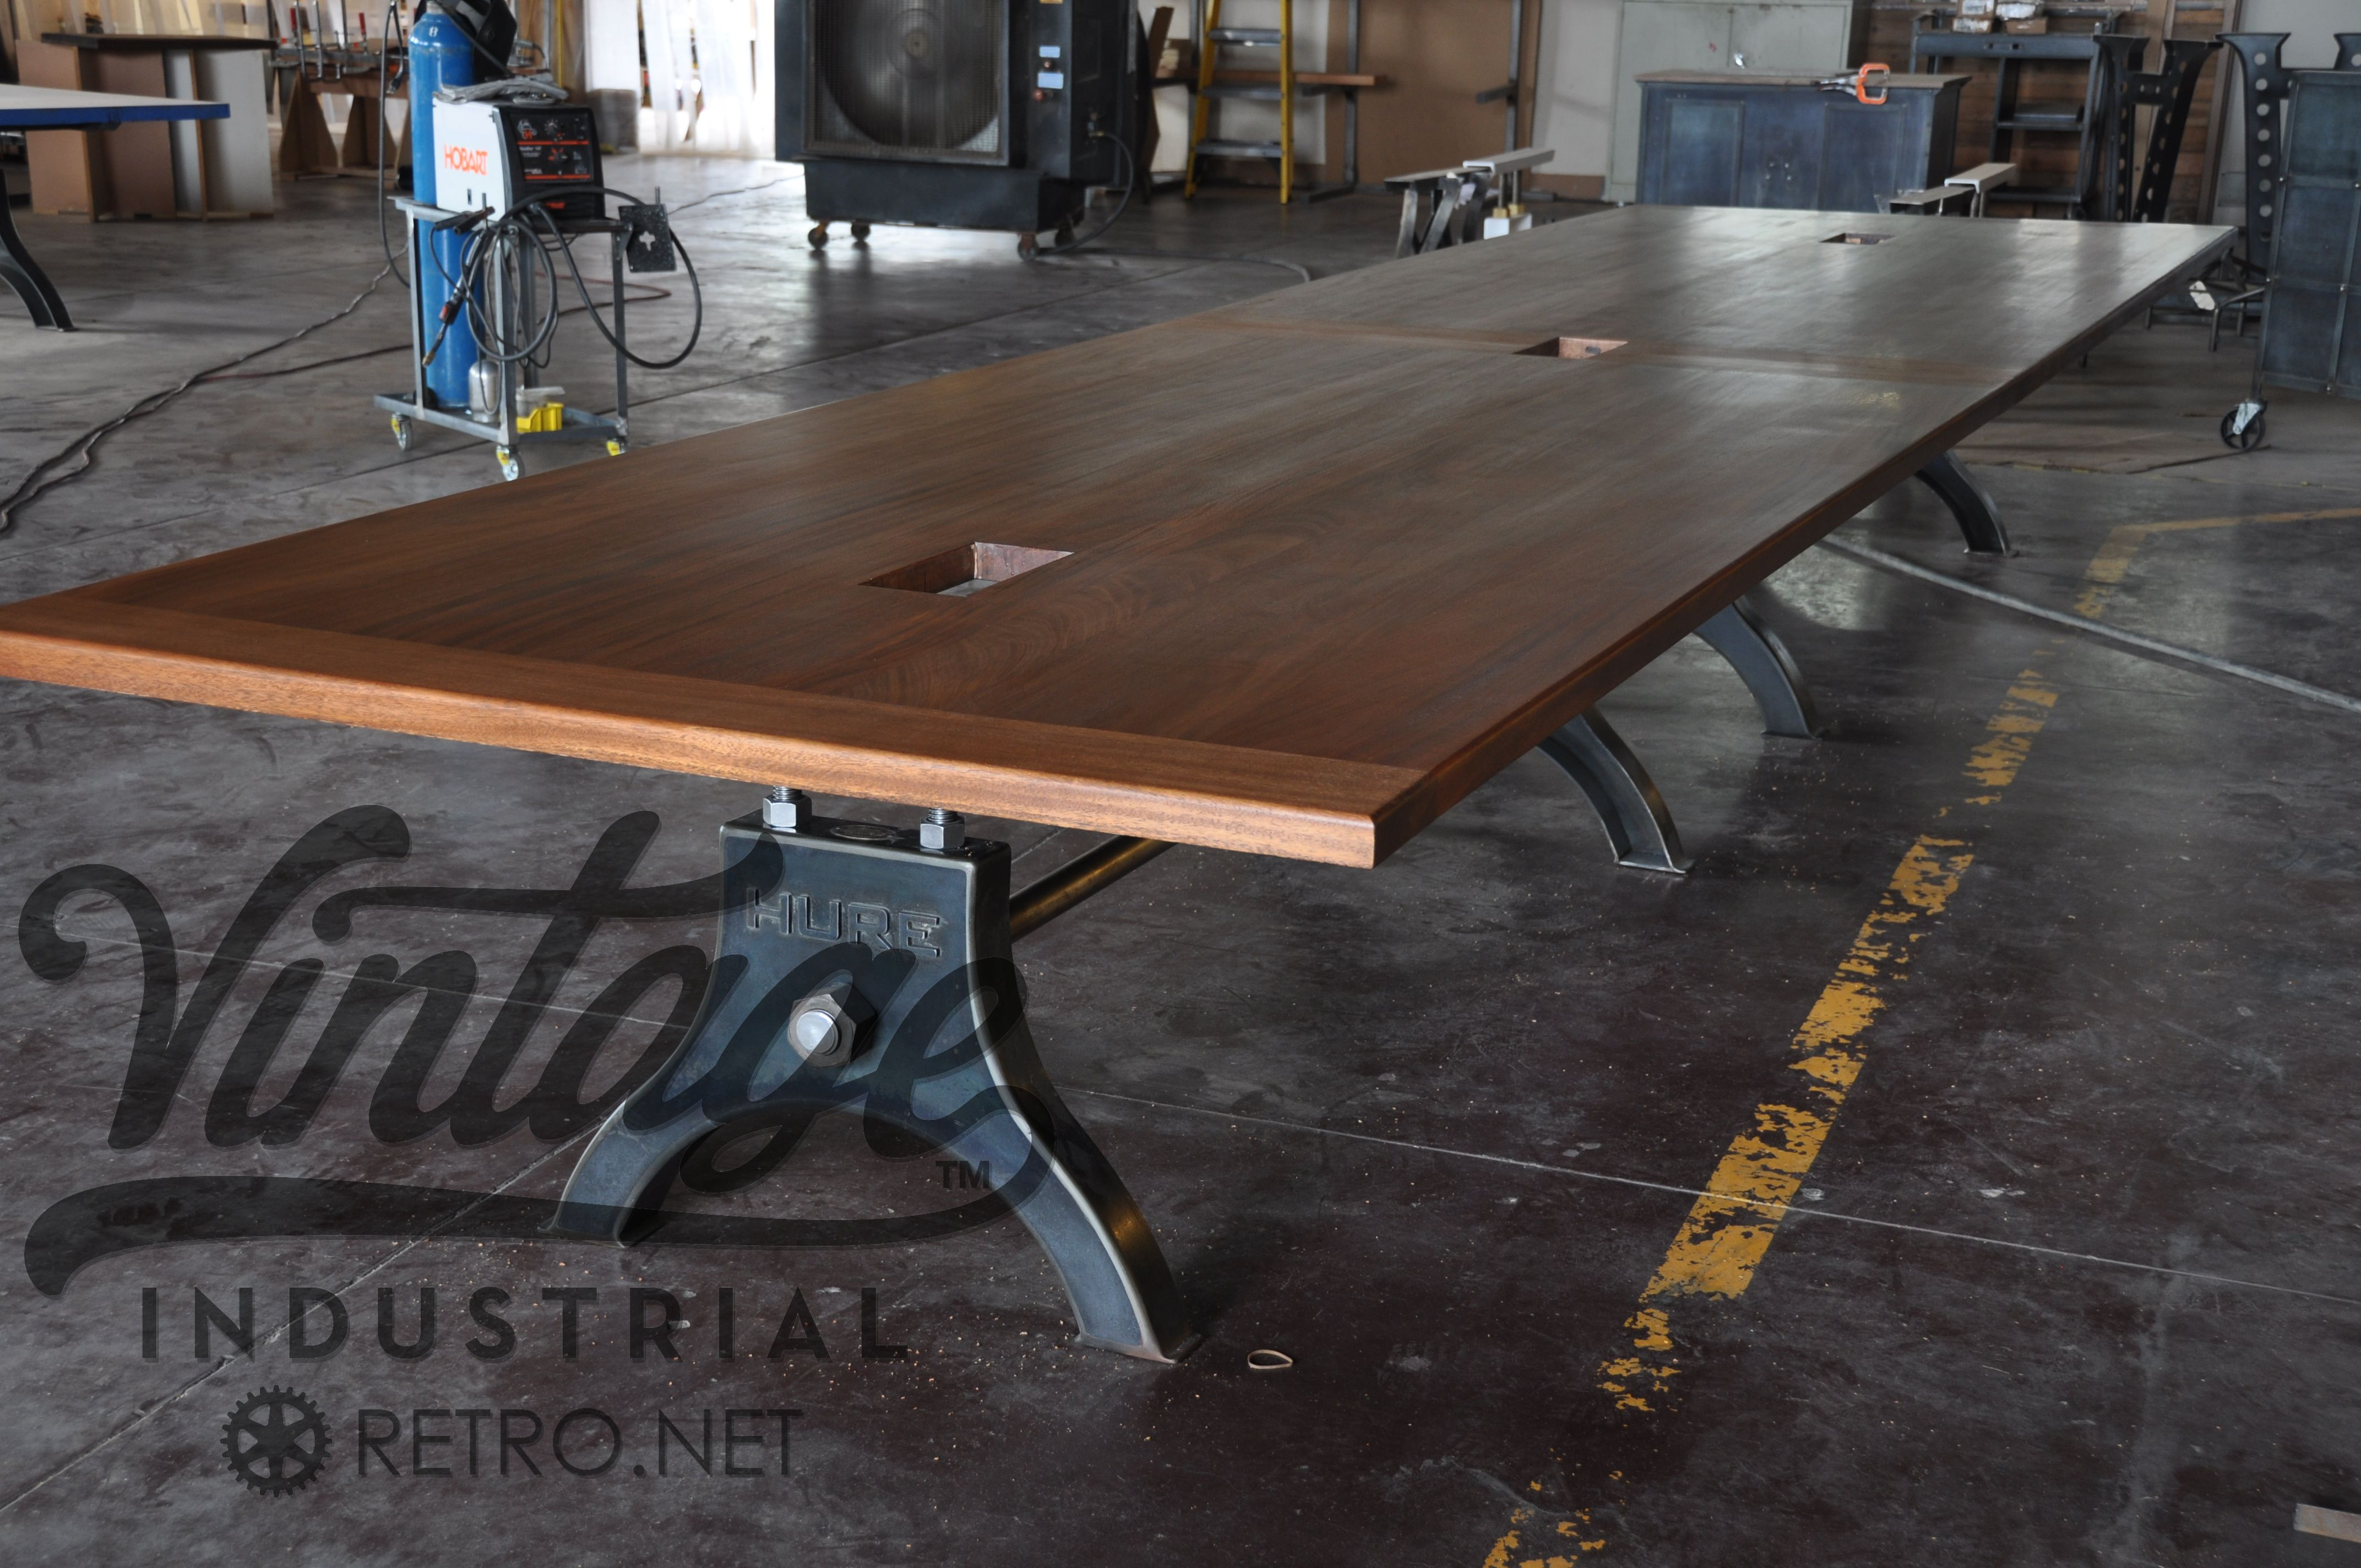 Post industrial conference table vintage industrial furniture - Vintage Industrial Hure Conference Table